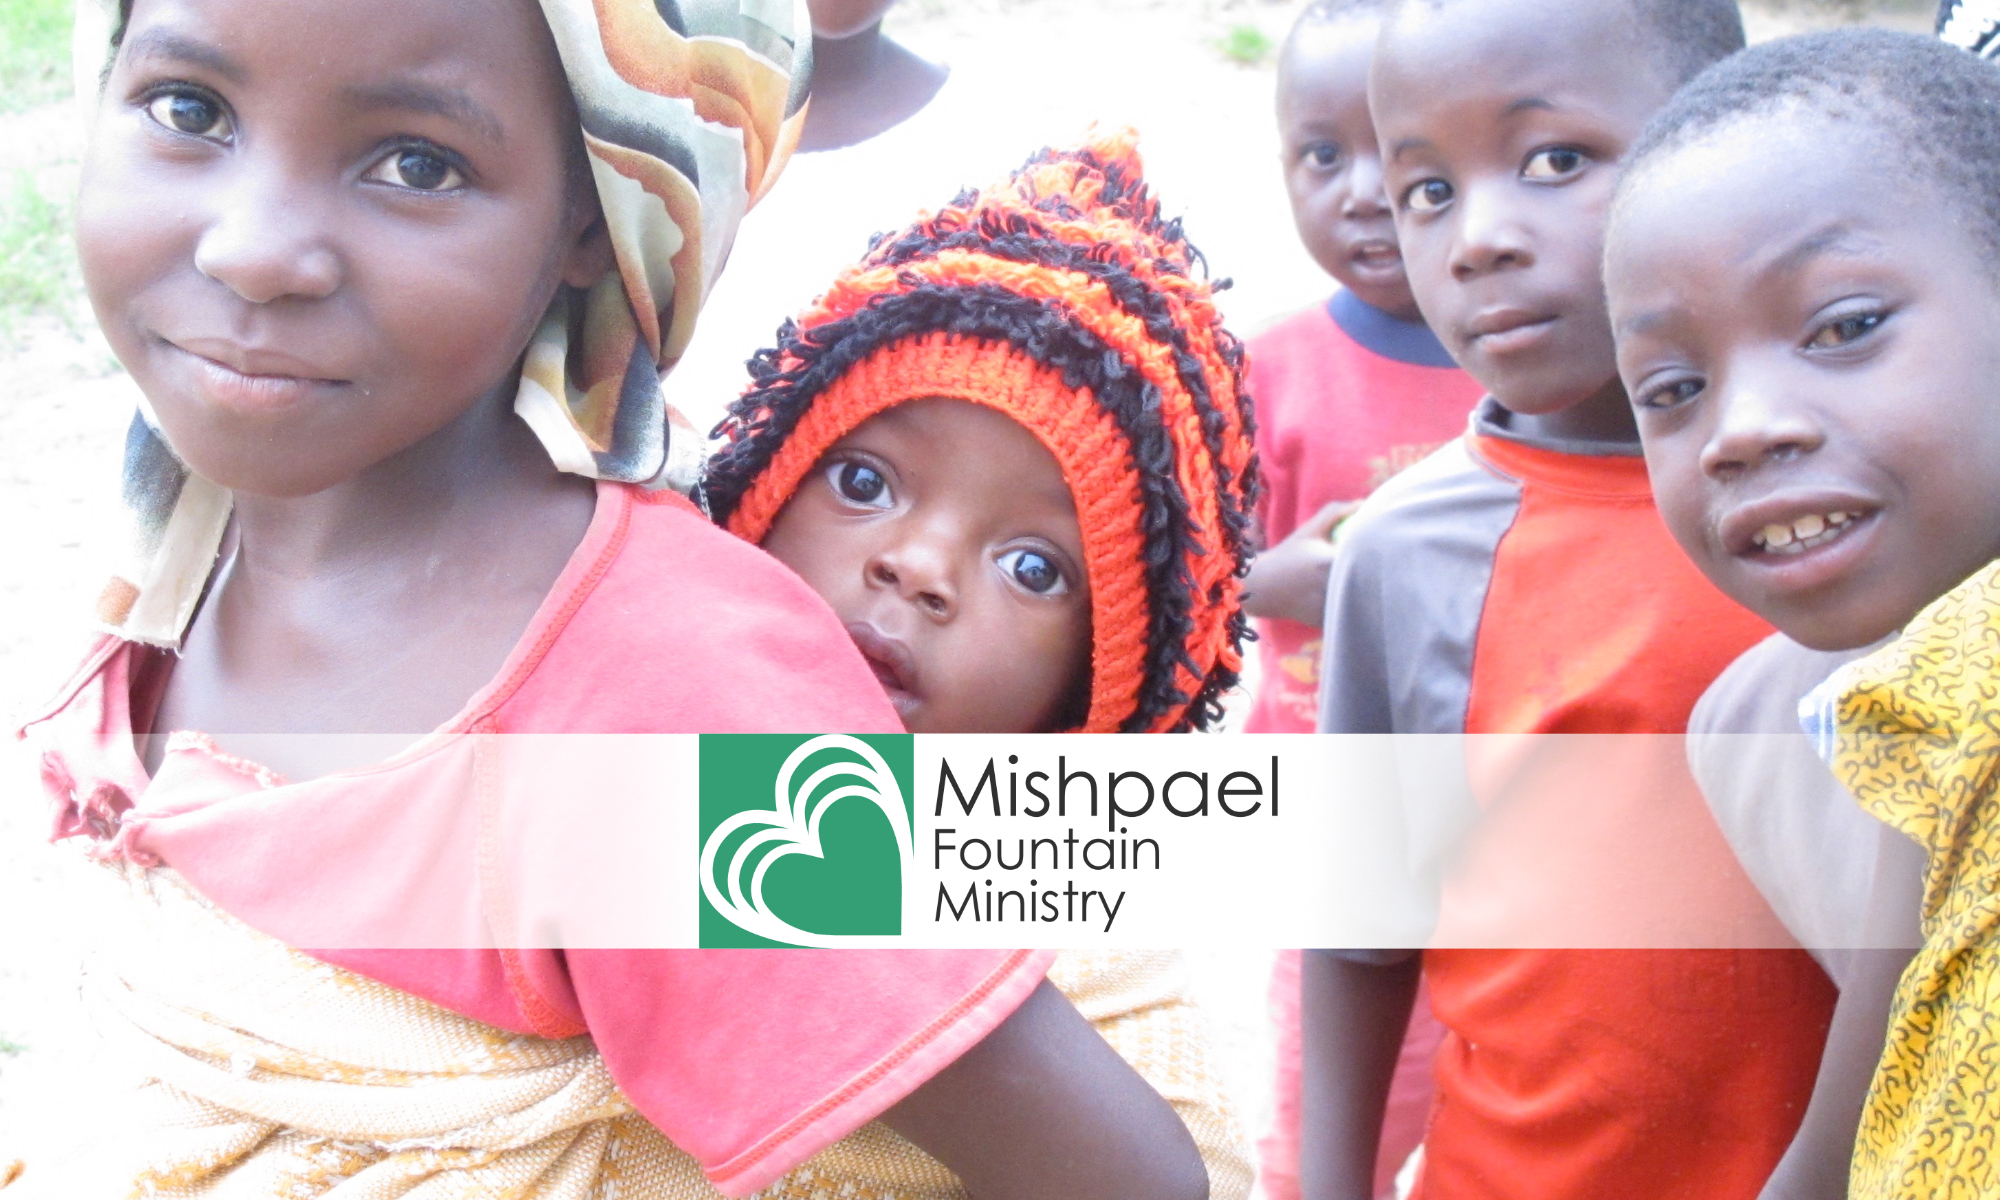 Mishpael Fountain Ministry